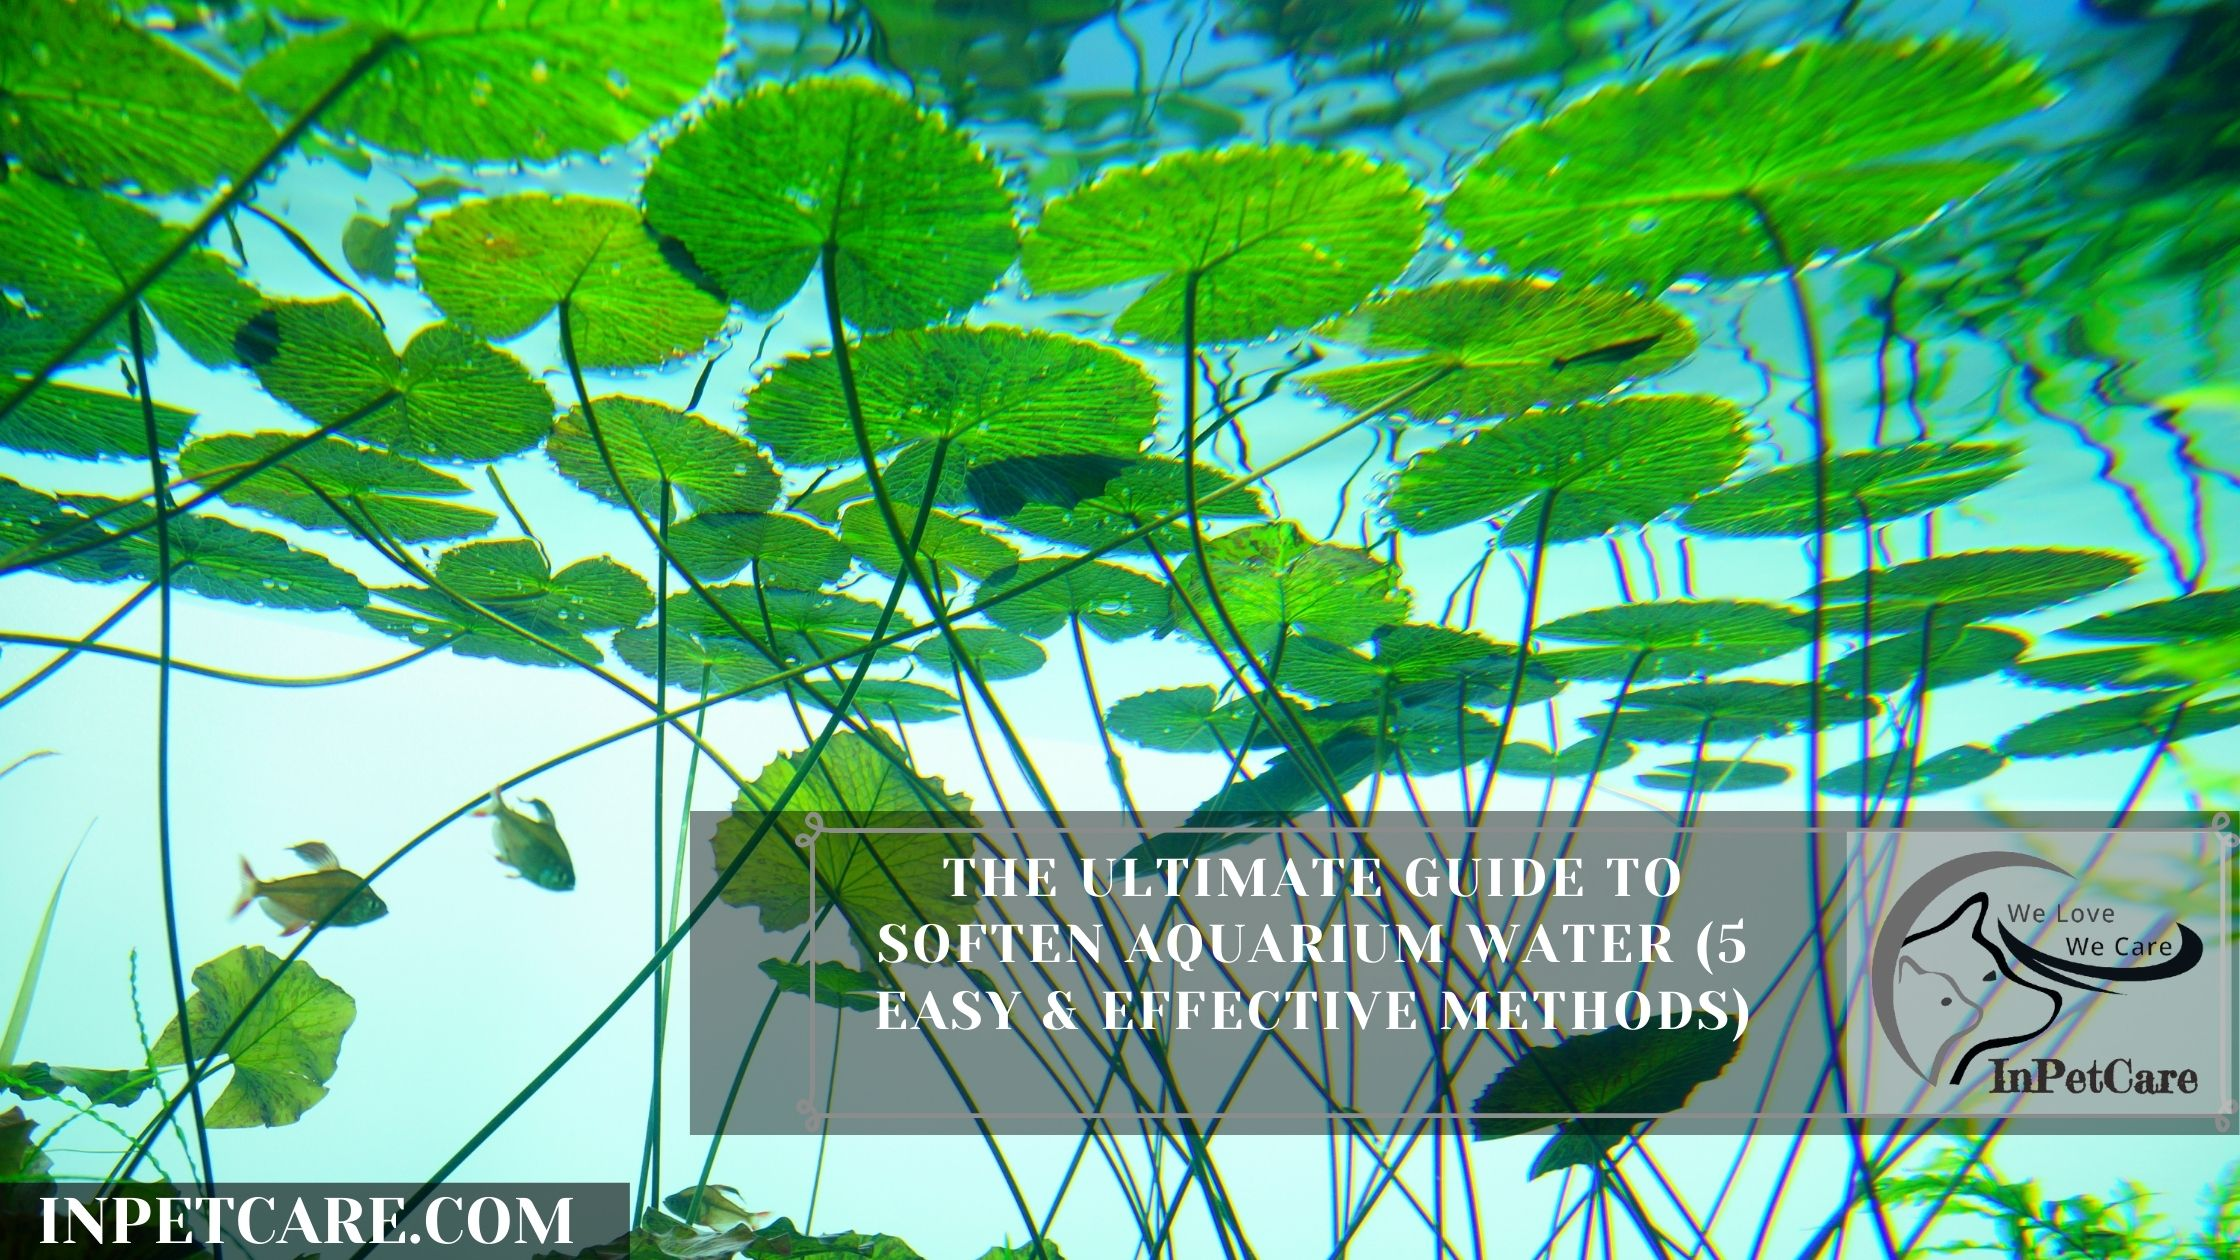 The Ultimate Guide To Soften Aquarium Water (5 Easy & Effective Methods)